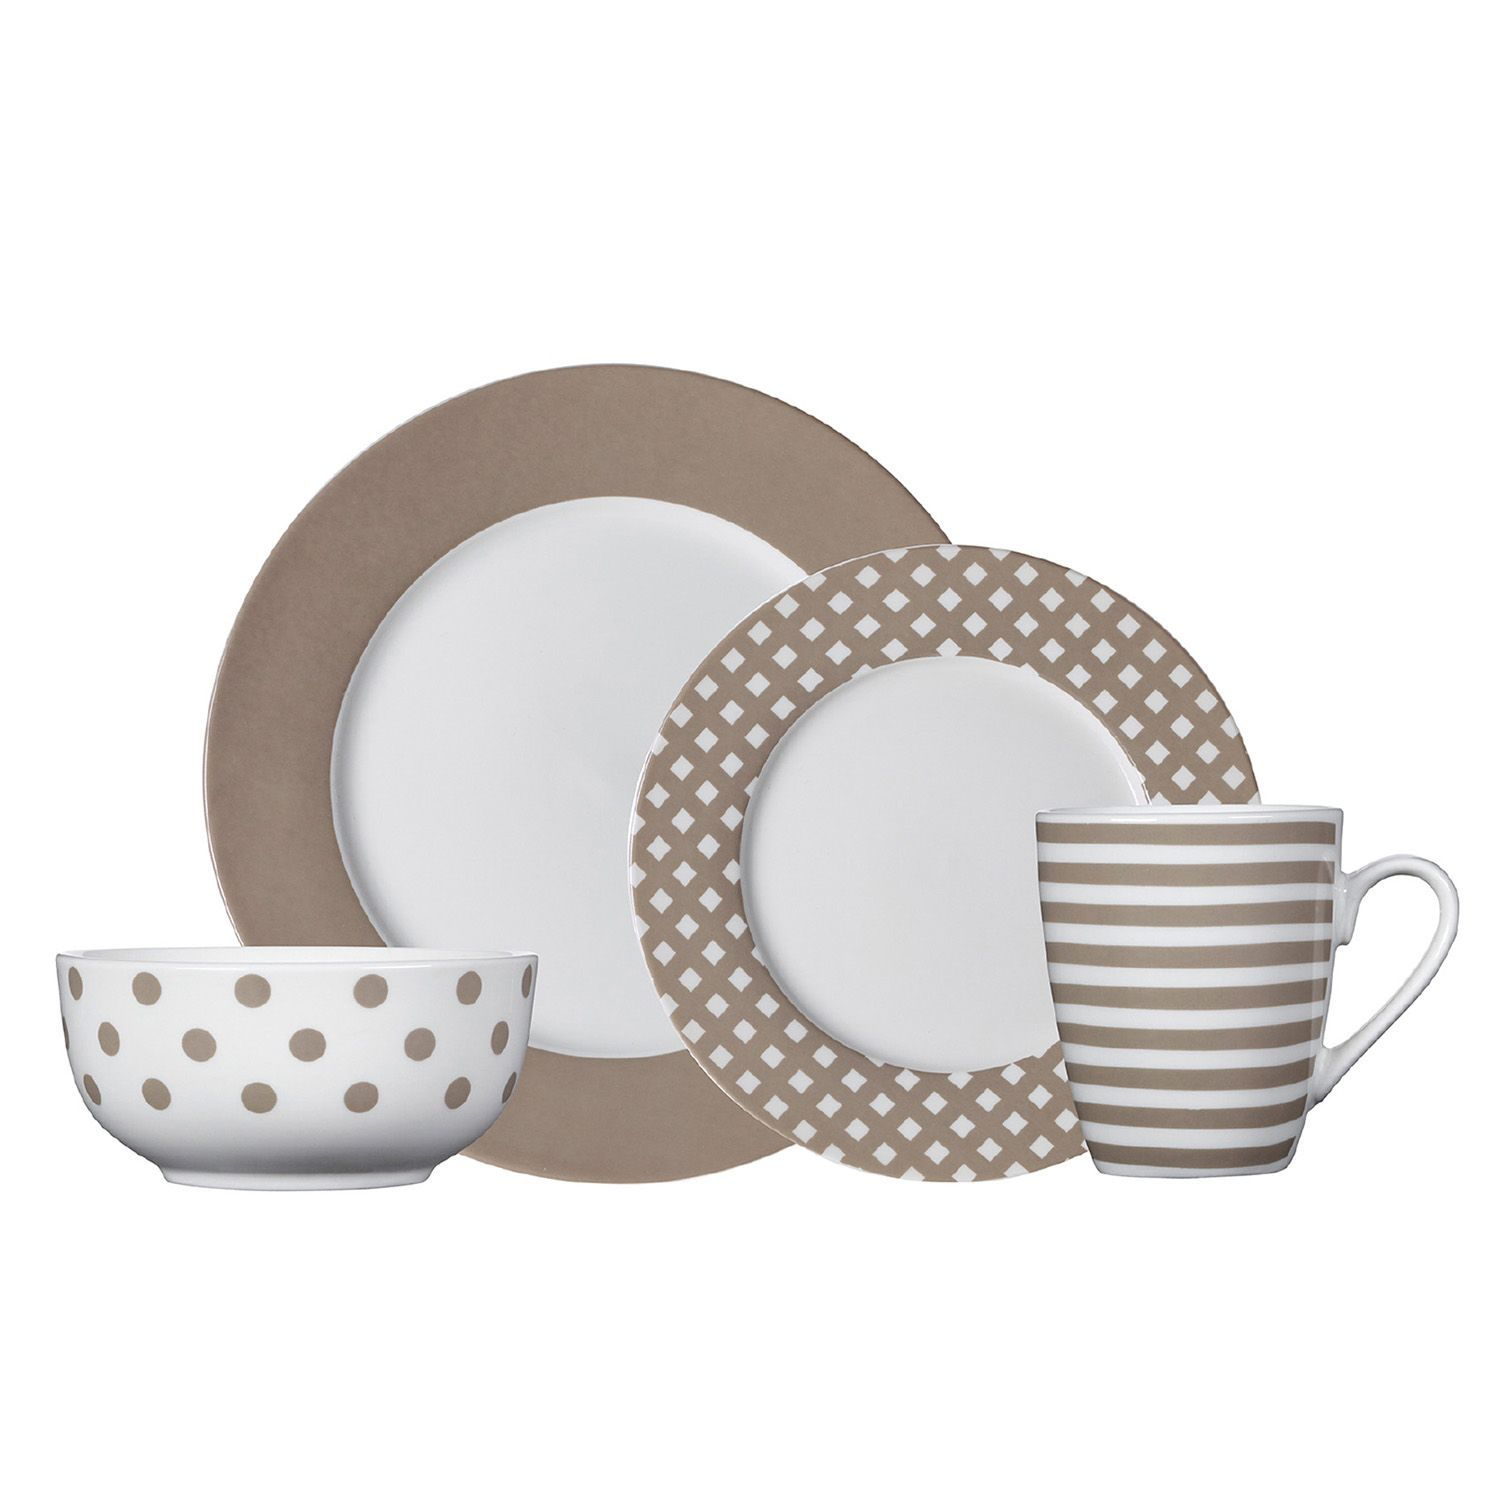 Pfaltzgraff Everyday Kenna 16-pc. Dinnerware Set  sc 1 st  Kohlu0027s & Pfaltzgraff Everyday Kenna 16-pc. Dinnerware Set | null